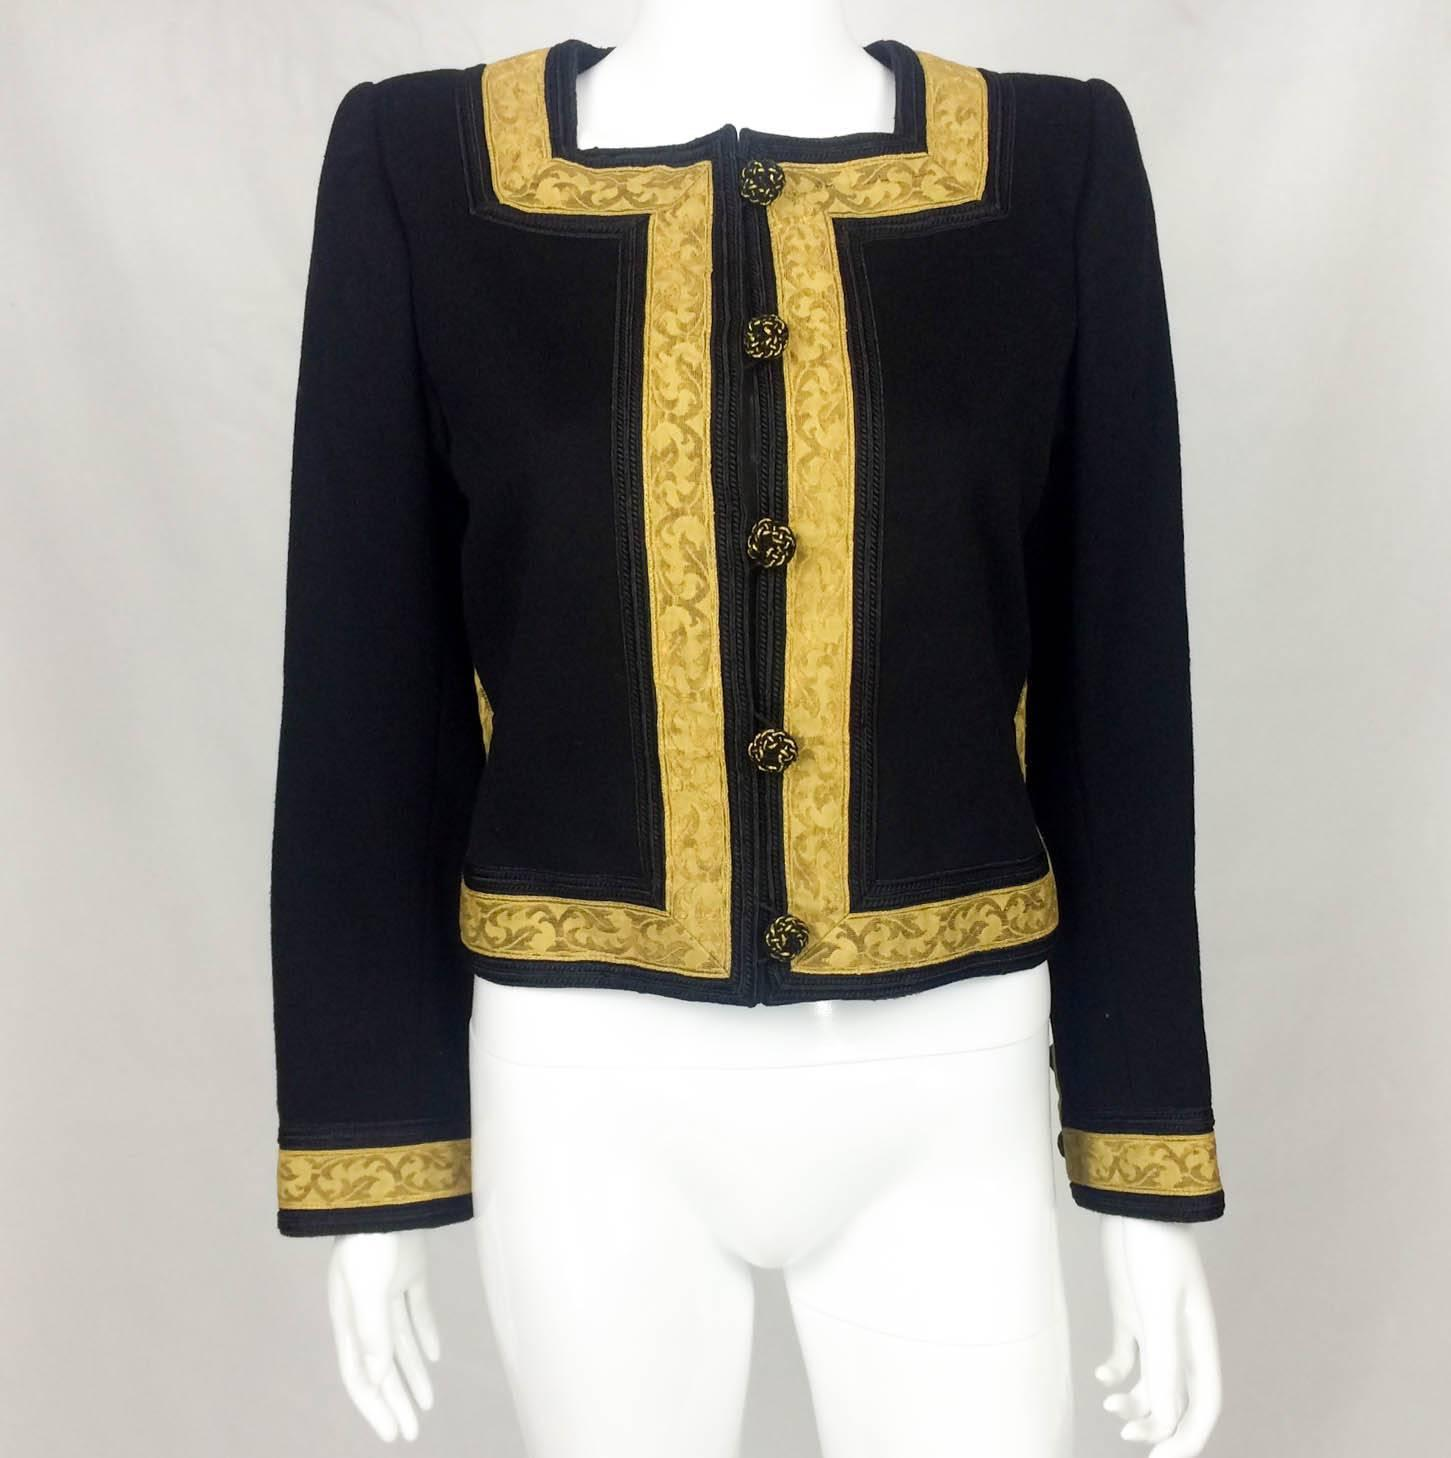 This is a well made fantastic matador costume. Absolutely true to size. 5'11